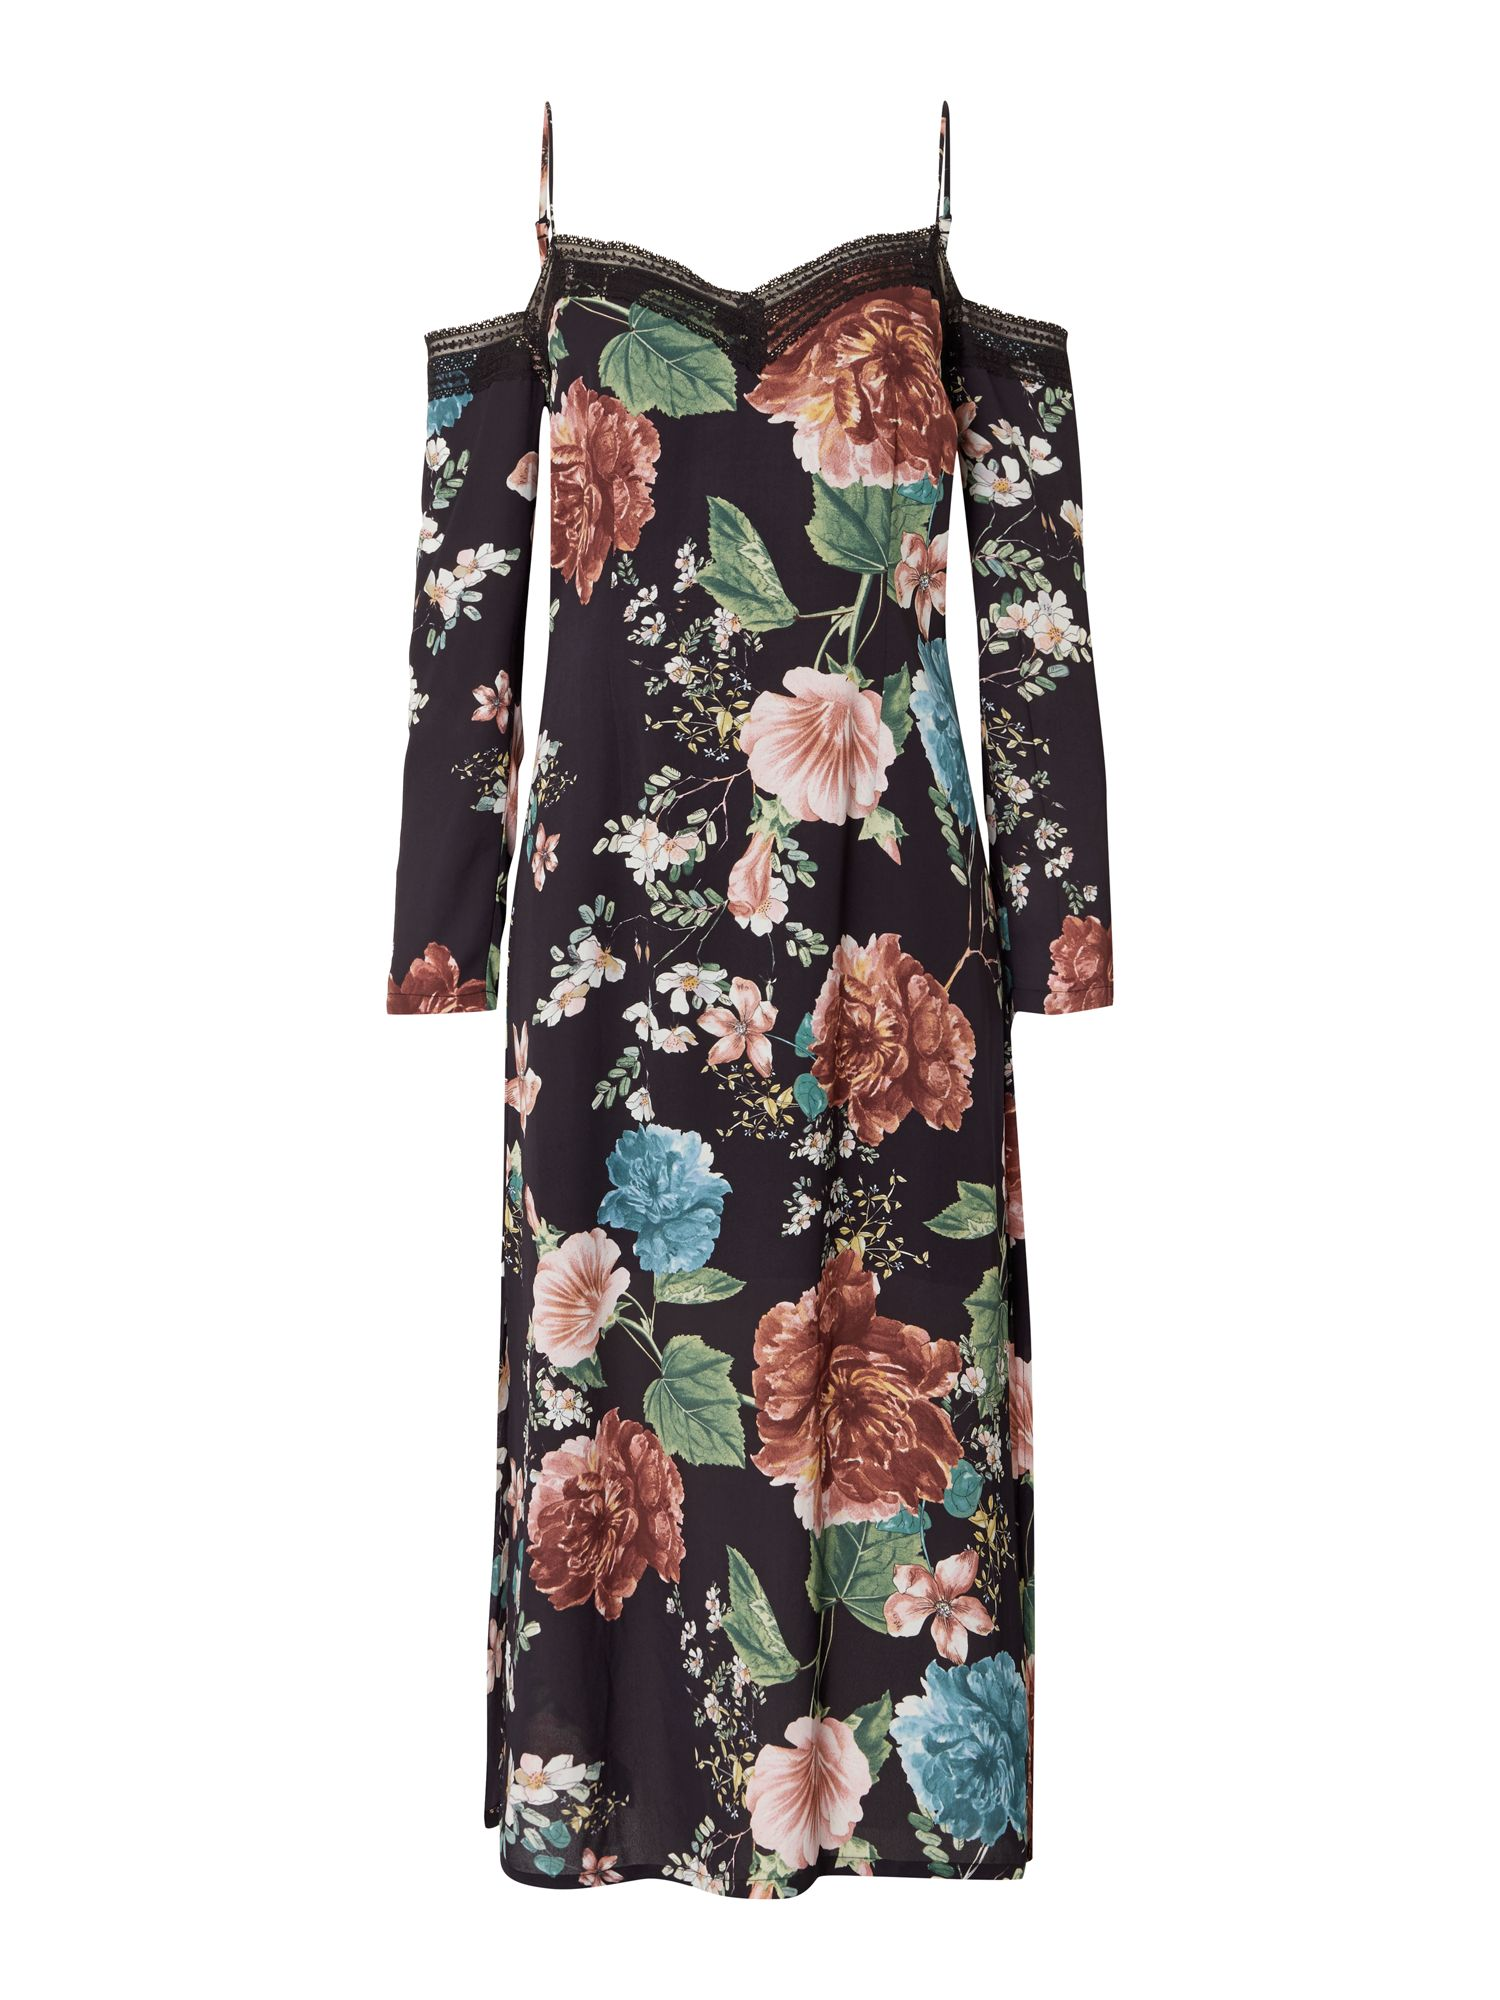 Bardot Cold Shoulder Floral Pencil Dress, Multi-Coloured